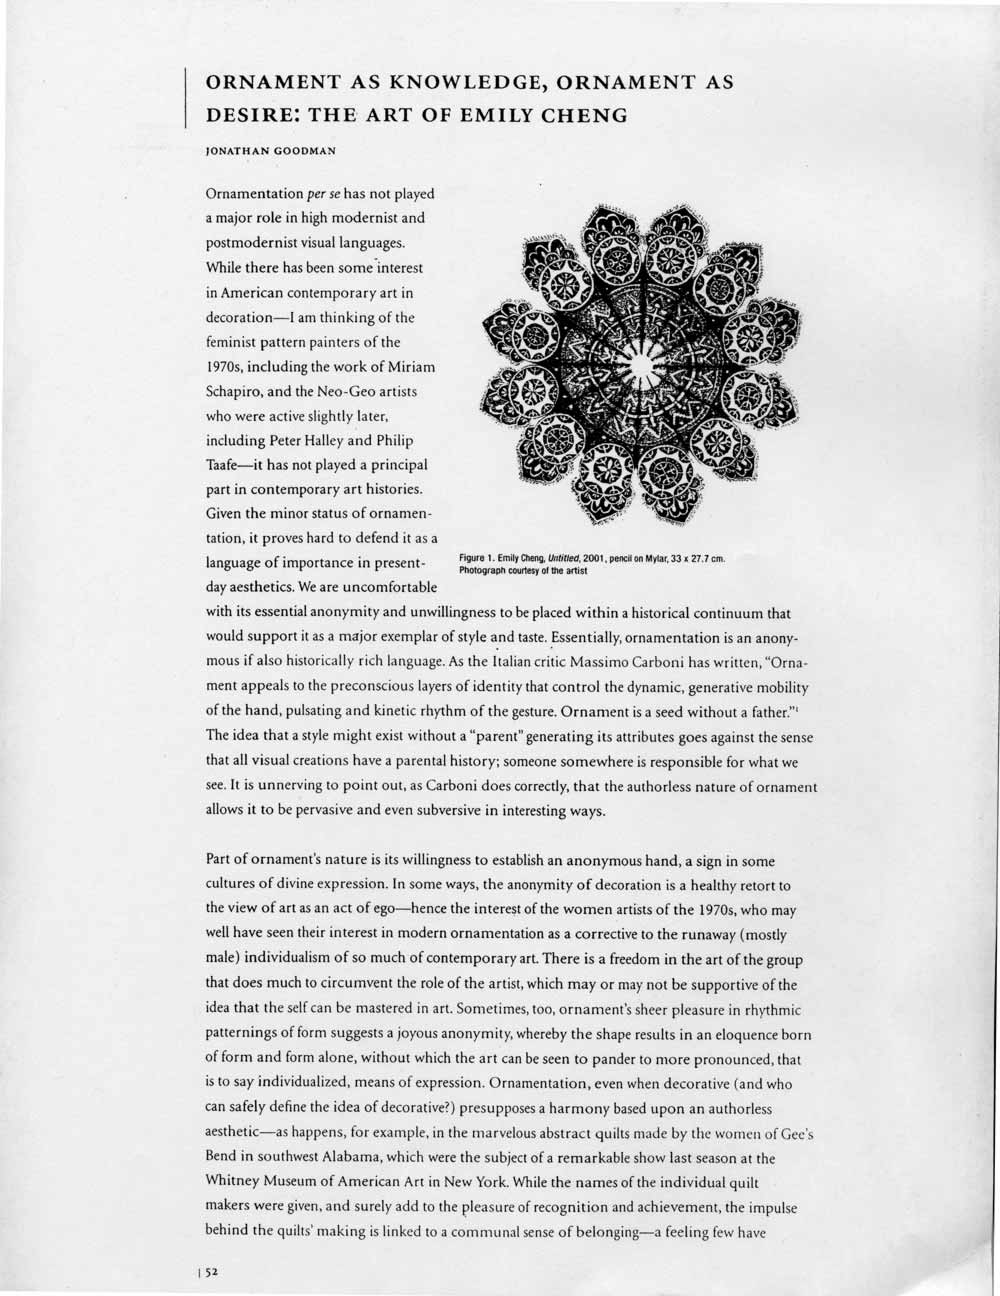 Ornament as Knowledge, pg 1